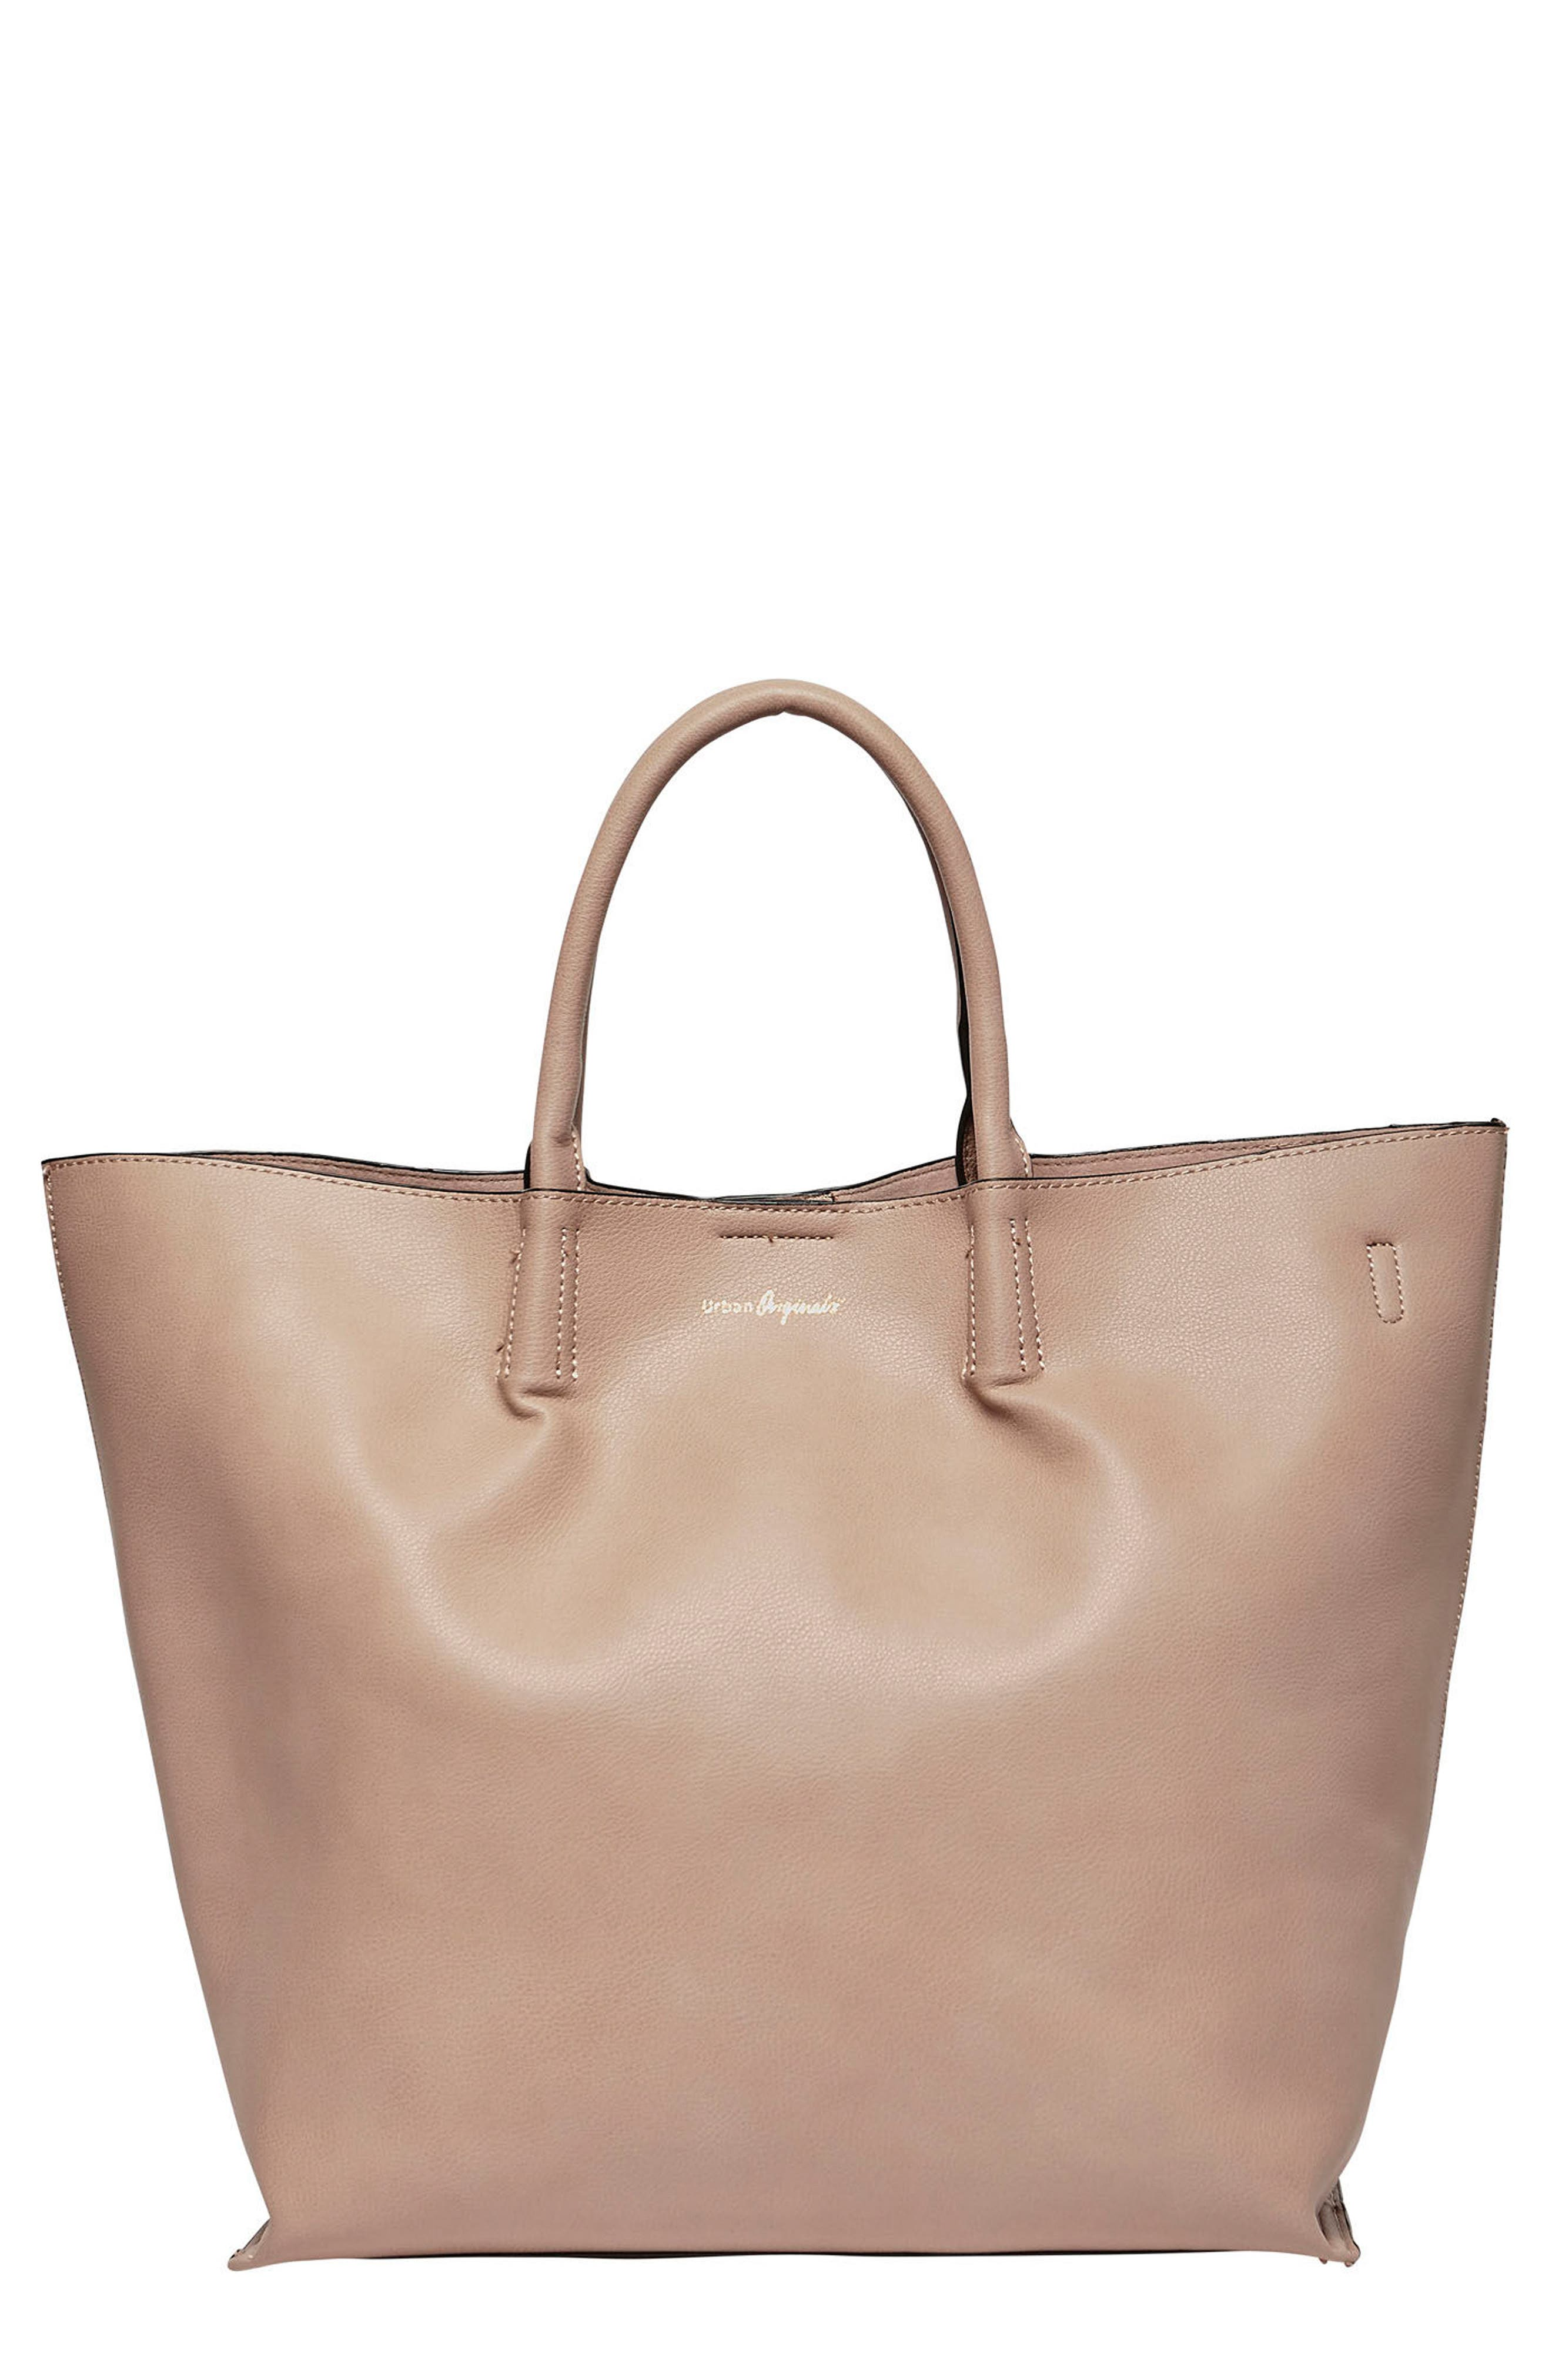 Butterfly Vegan Leather Tote,                             Main thumbnail 1, color,                             Nude